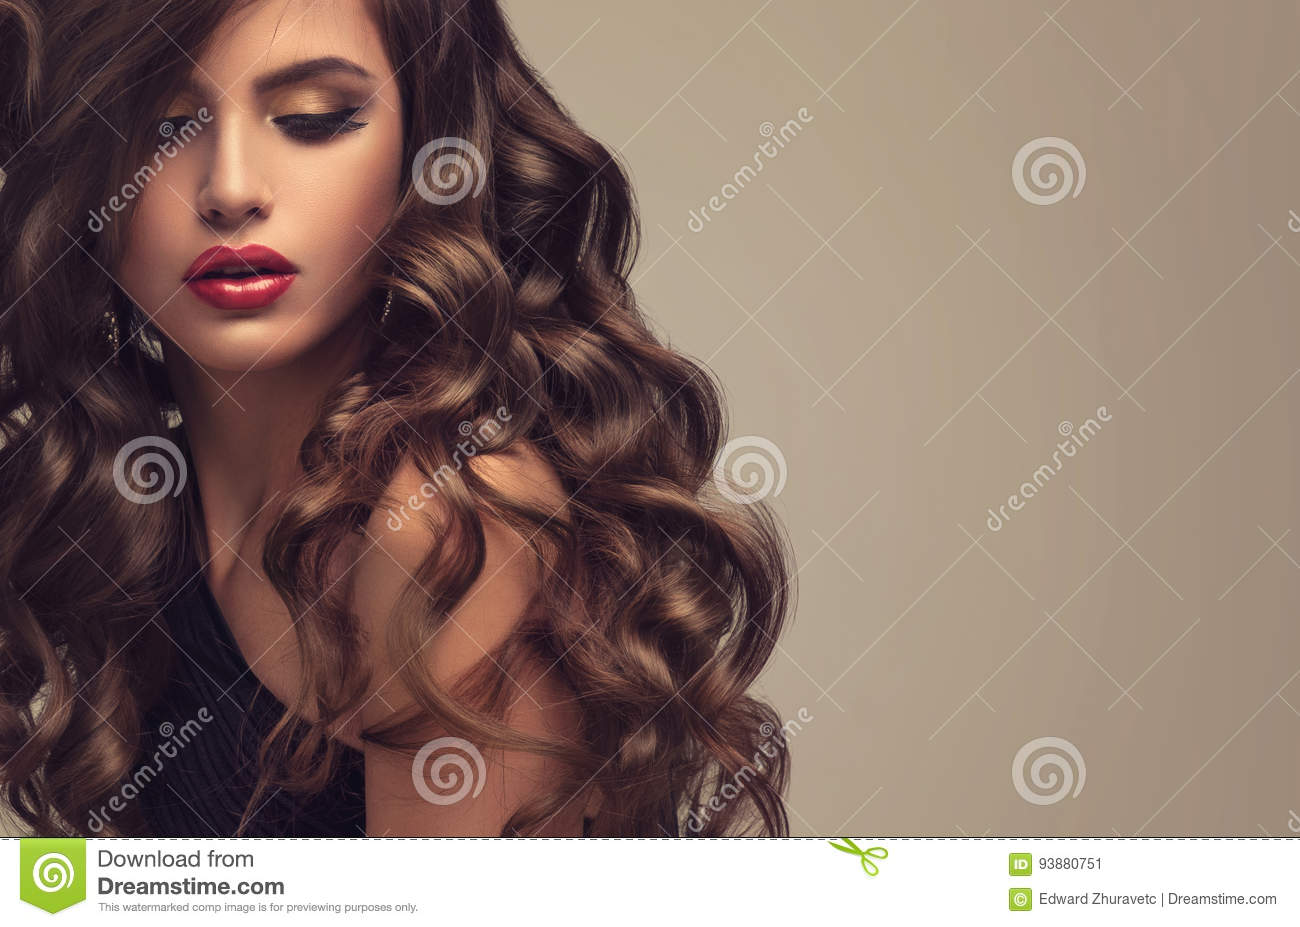 Voluminous Hairstyles For Long Hair - Royalty free stock photo